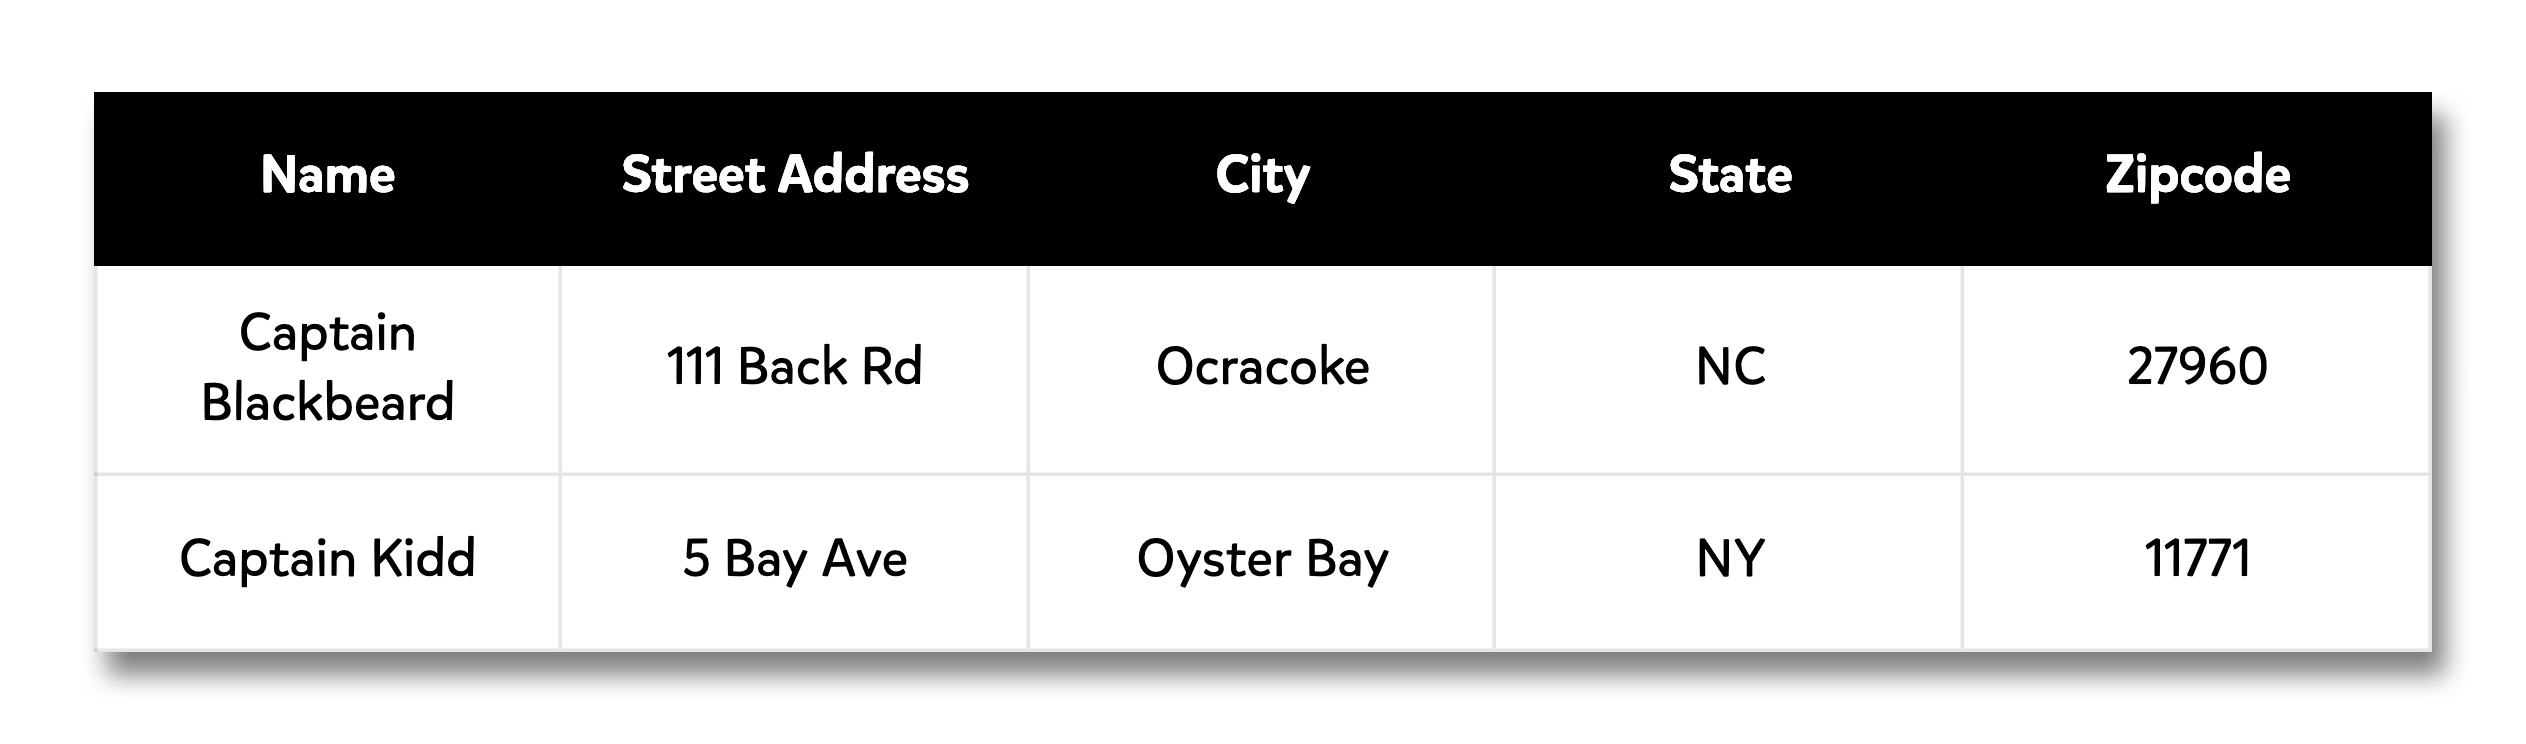 A screenshot showing an address spreadsheet with columns for 'Name,' 'Street Address,' 'City,' 'State,' and 'Zipcode.'